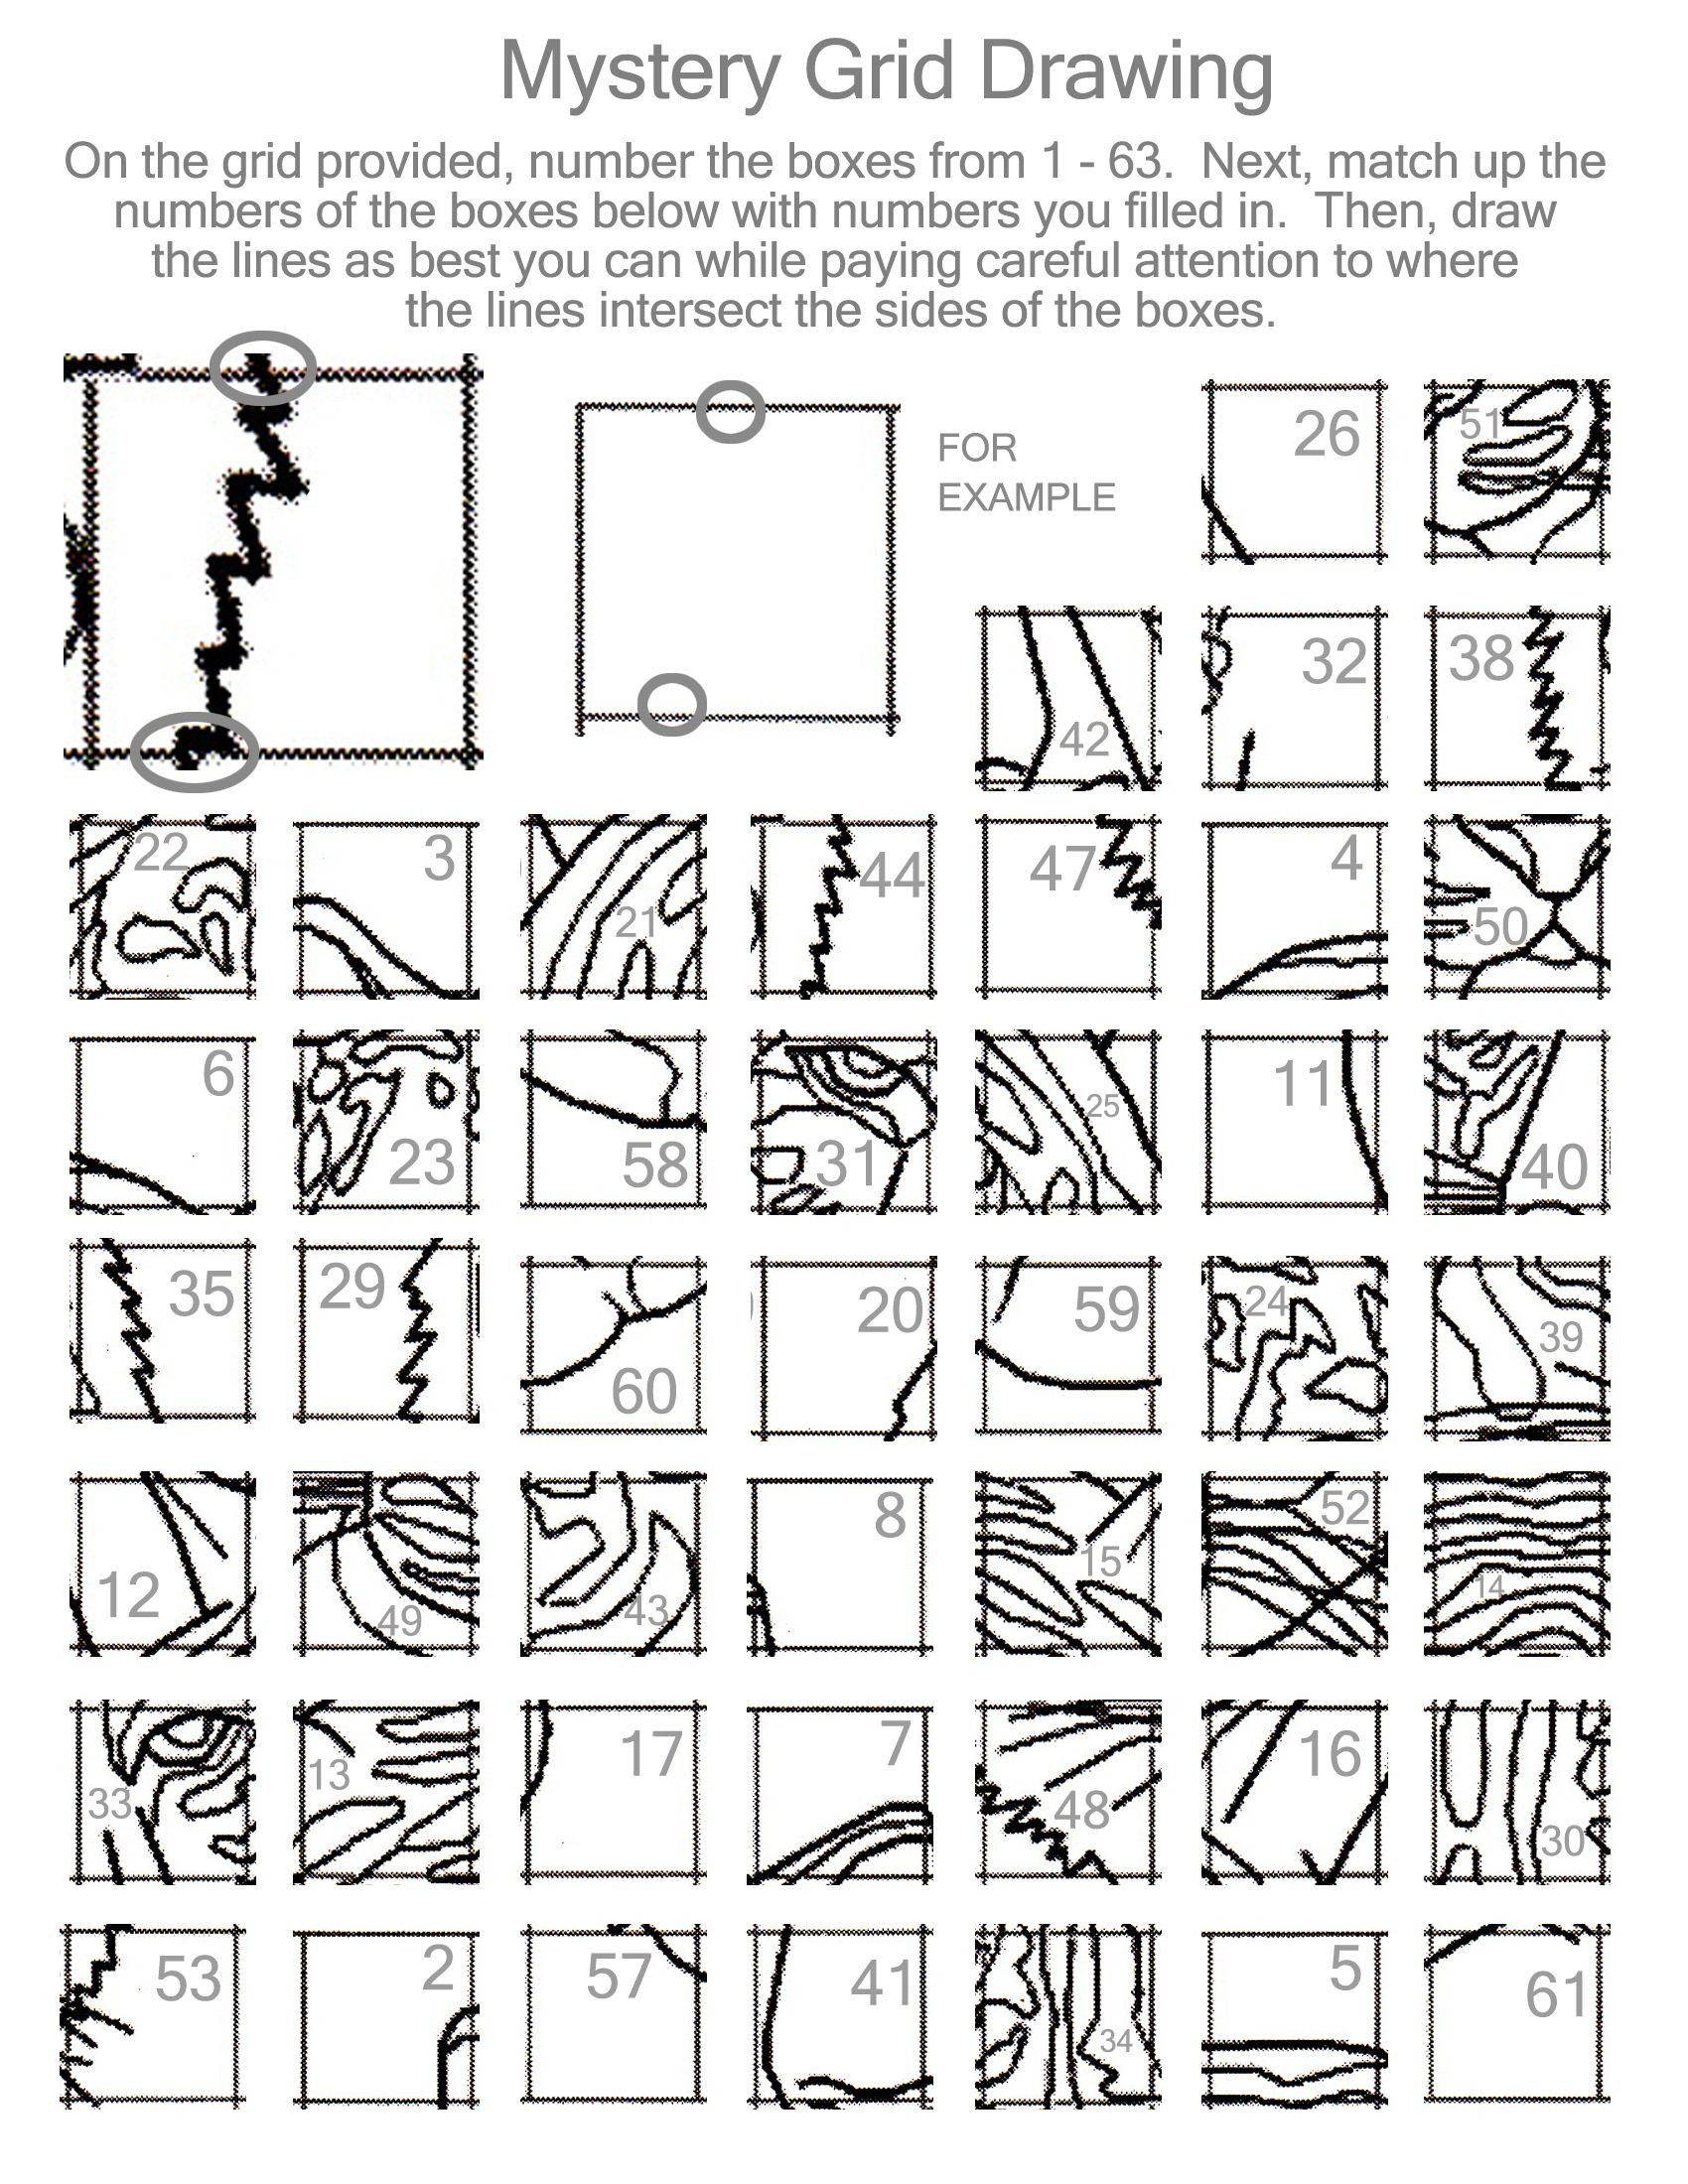 Grid Drawing Worksheets Middle School Drawing Activity to Teach the Grid Method Requires A 9x7